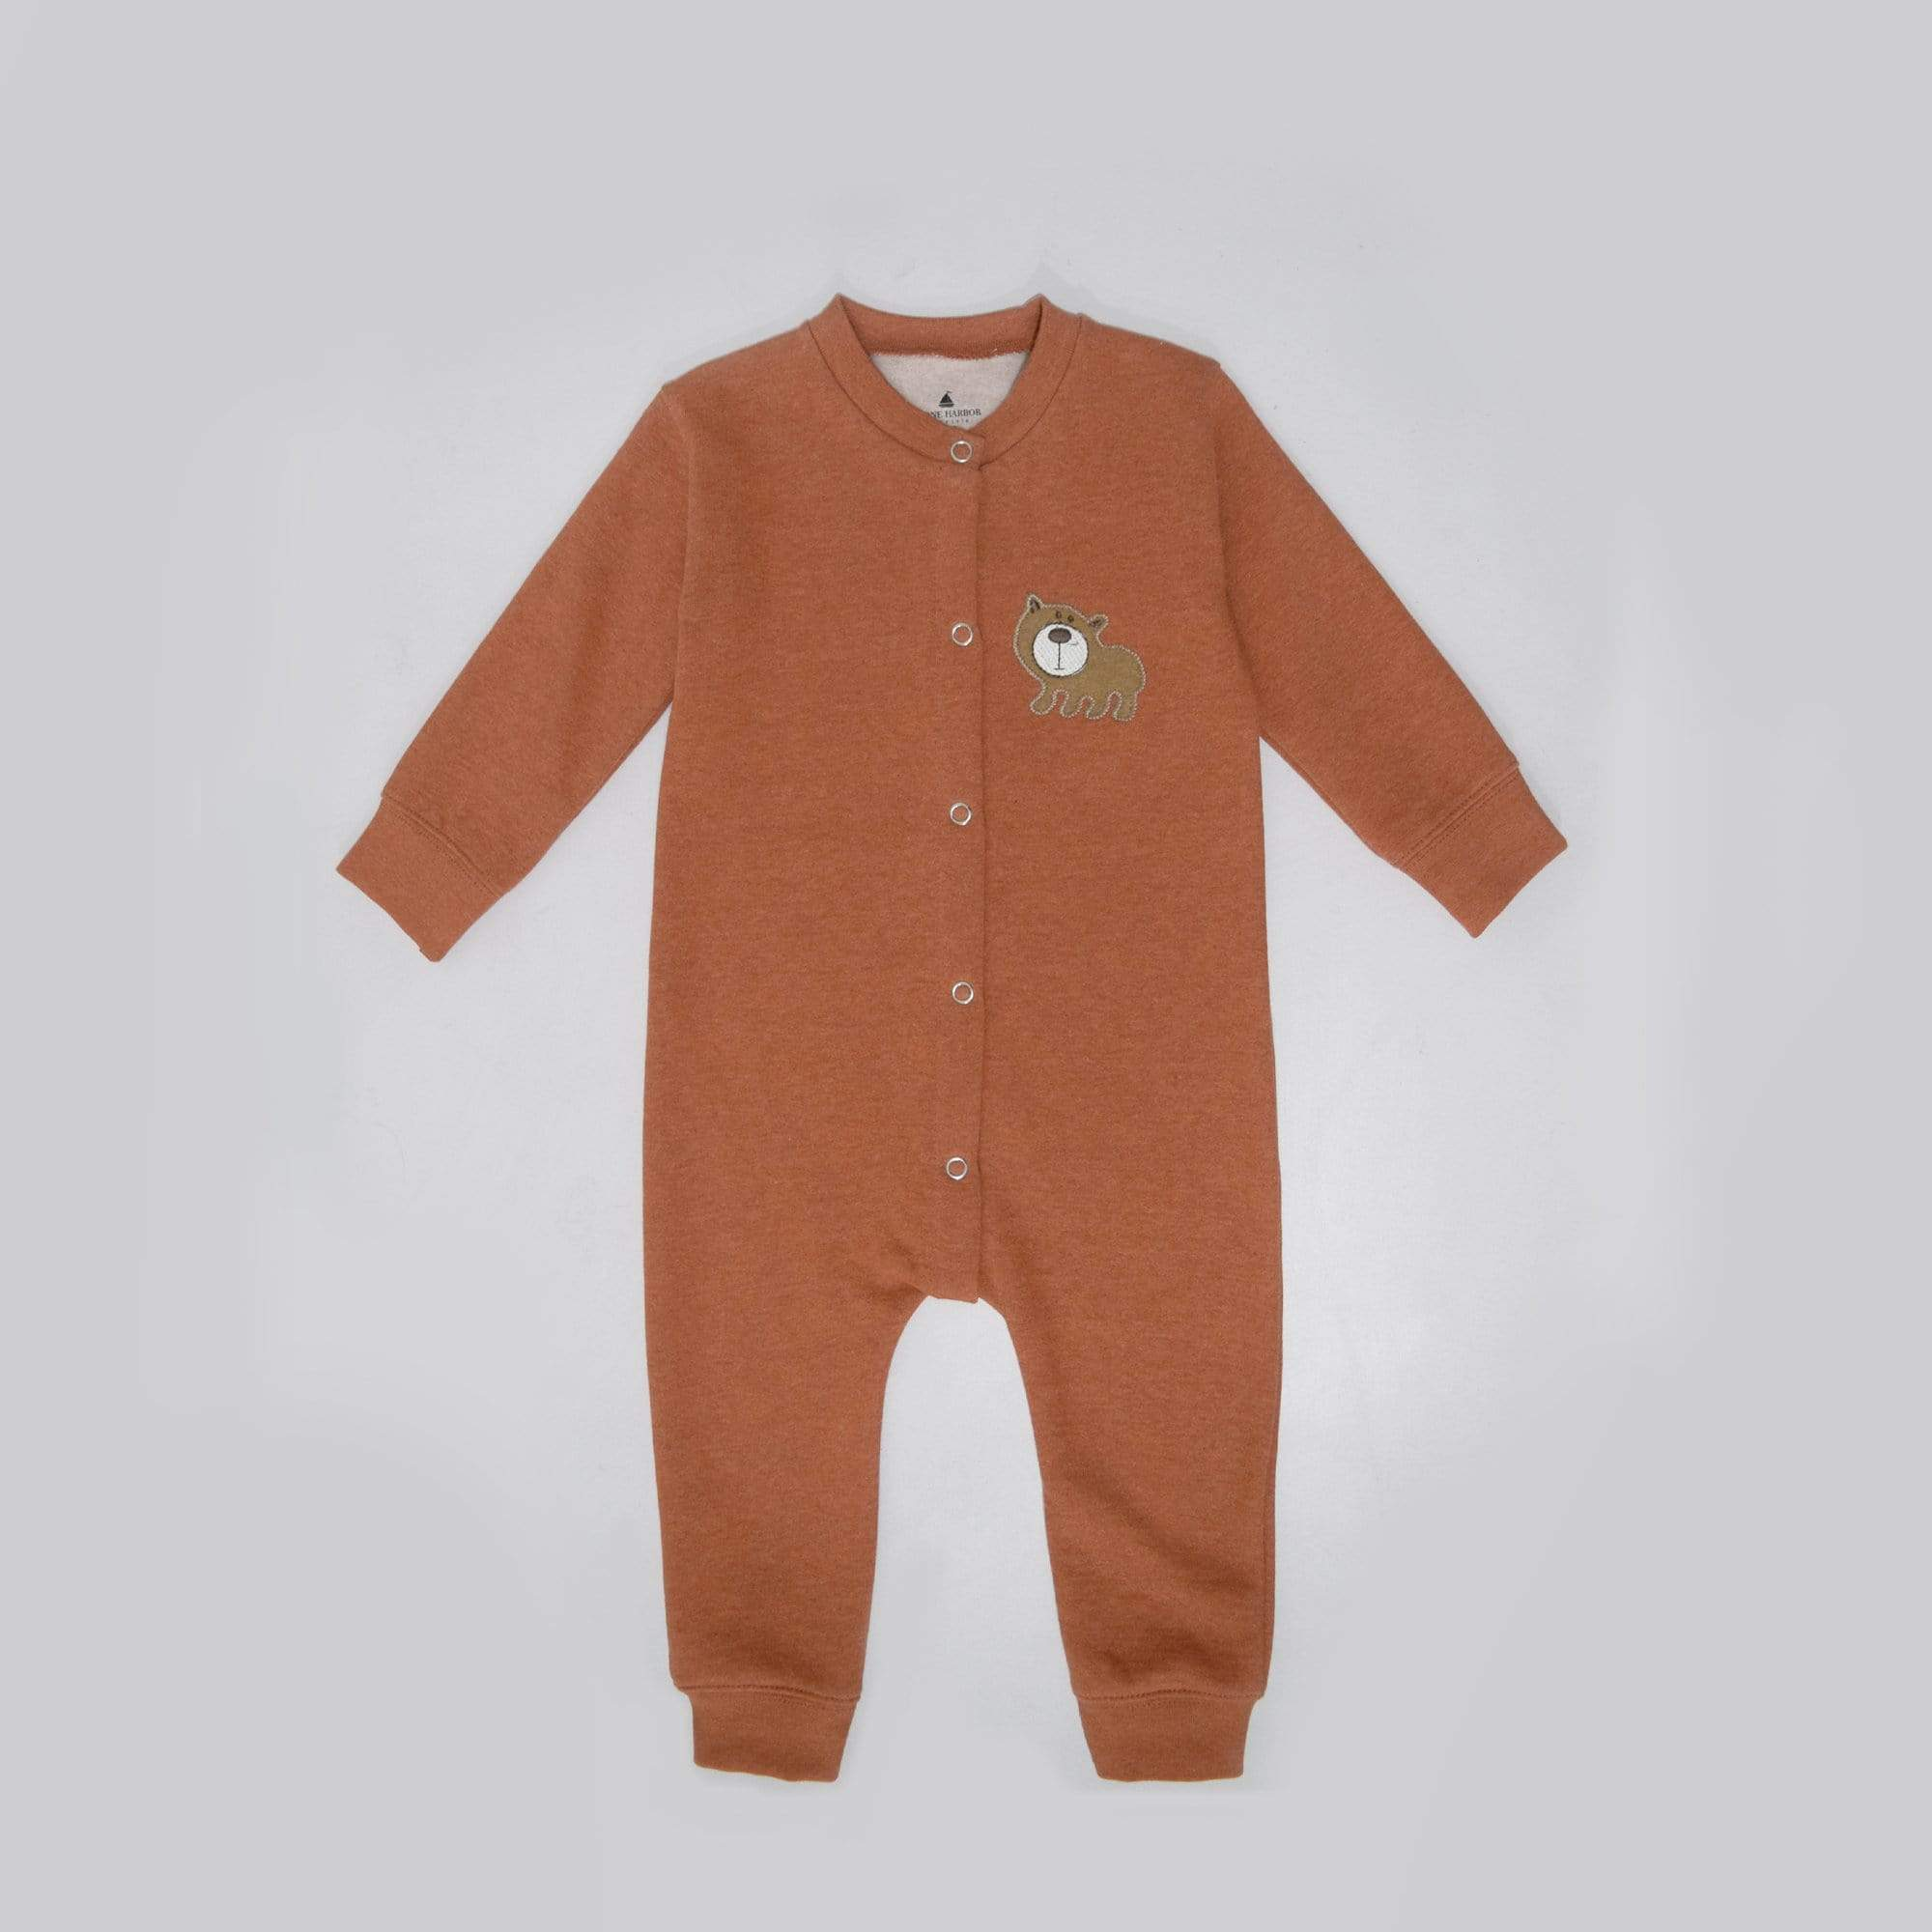 Stone Harbor Kid's Romper Light Orange / 0-3 Months Kid's Stone Harbor UNISEX Bear Fleece Romper